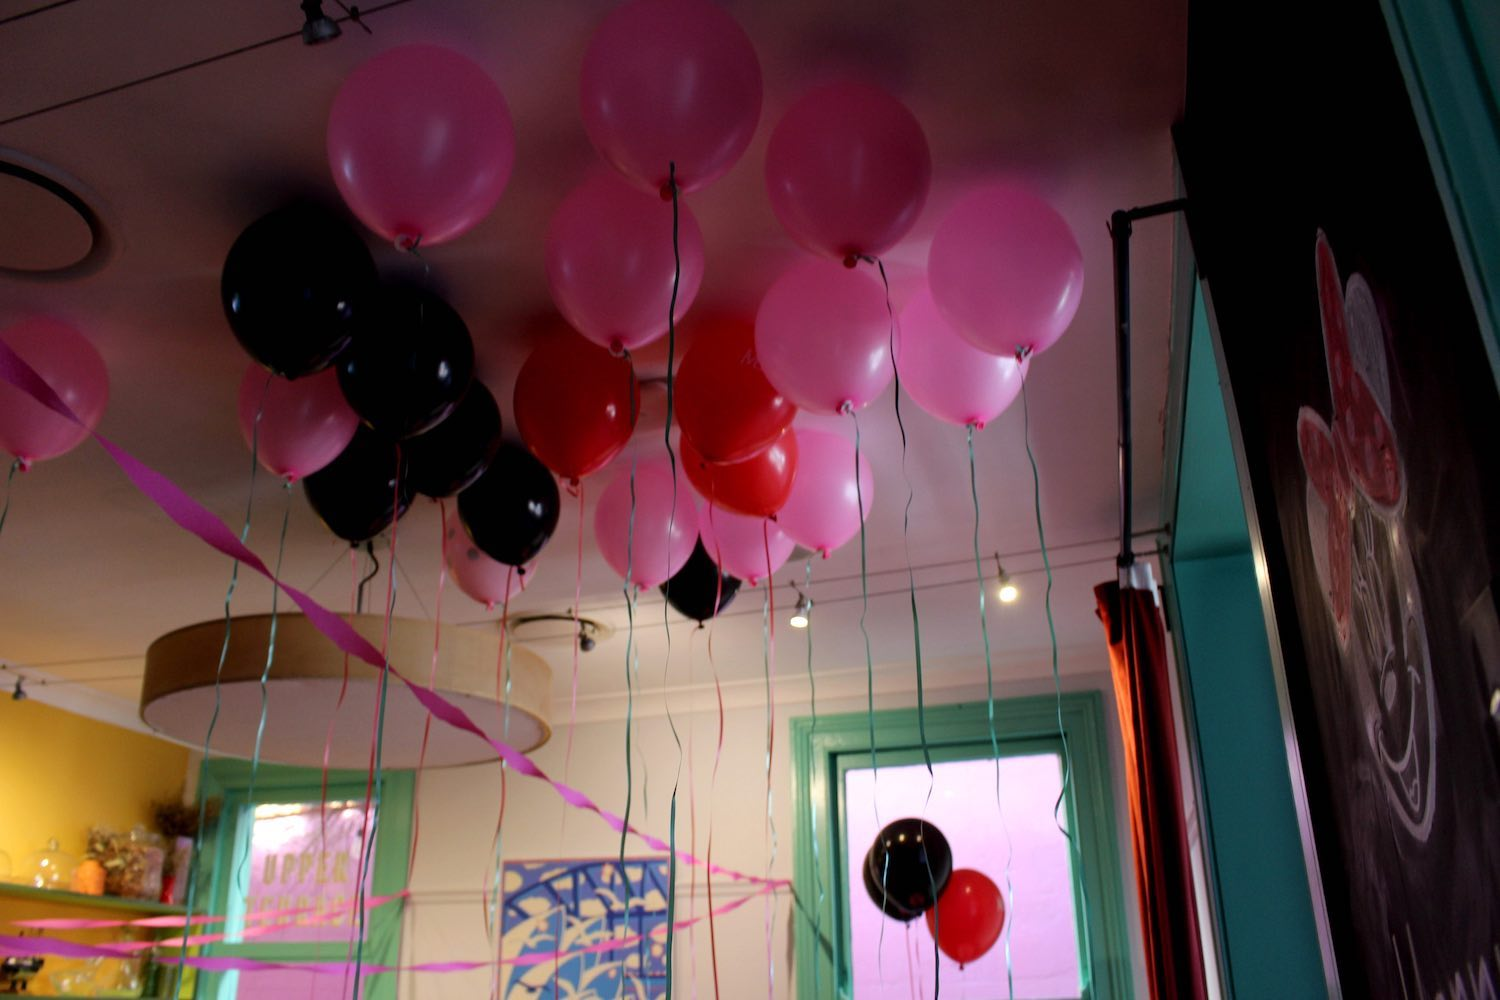 partys_balloons_upstairs.jpg